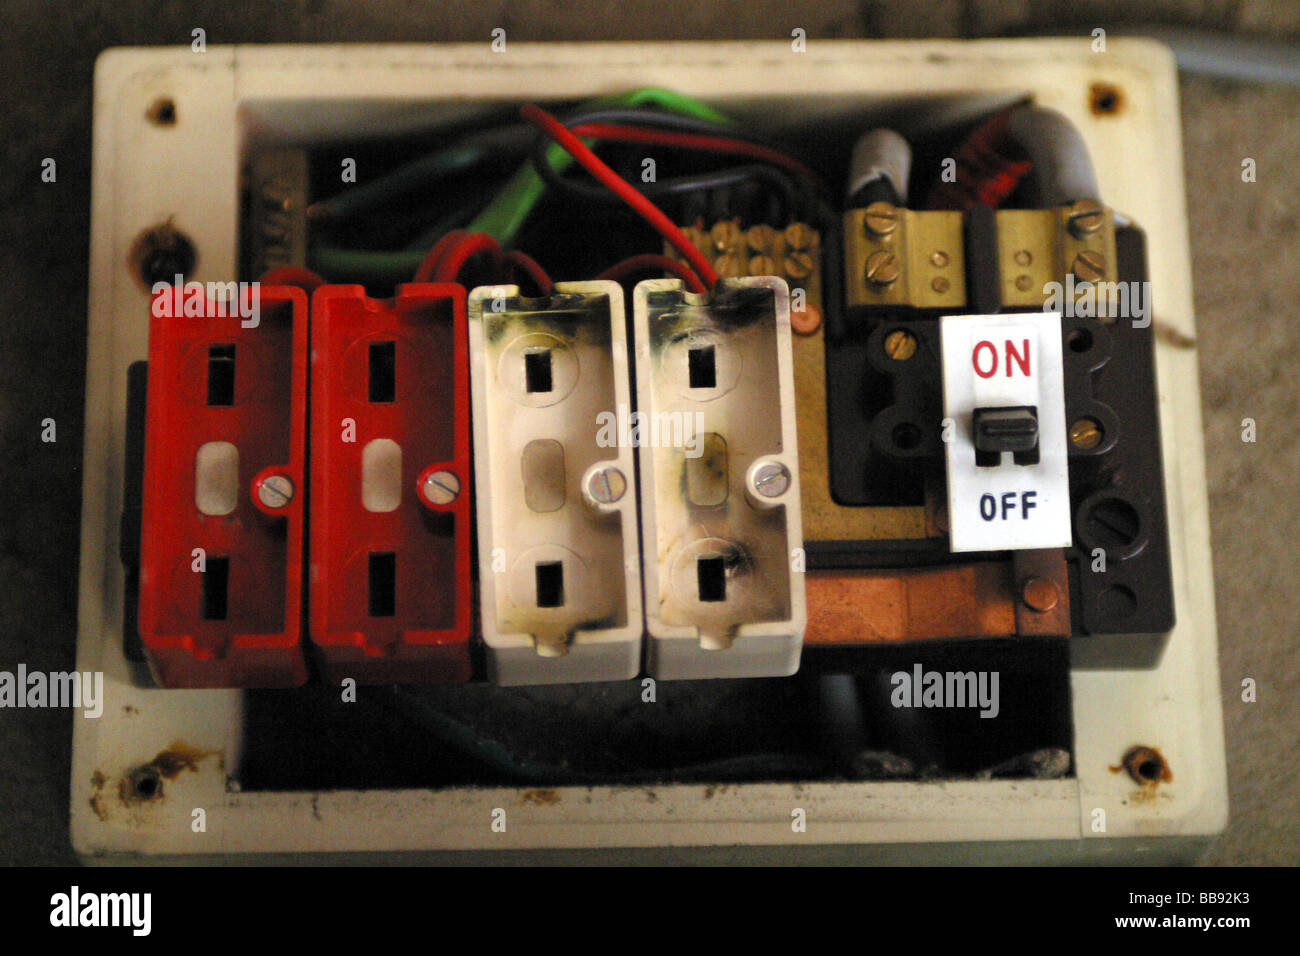 old fuses fuse box stock photos old fuses fuse box stock images rh alamy com Cartridge Fuse Box Cartridge Fuse Box